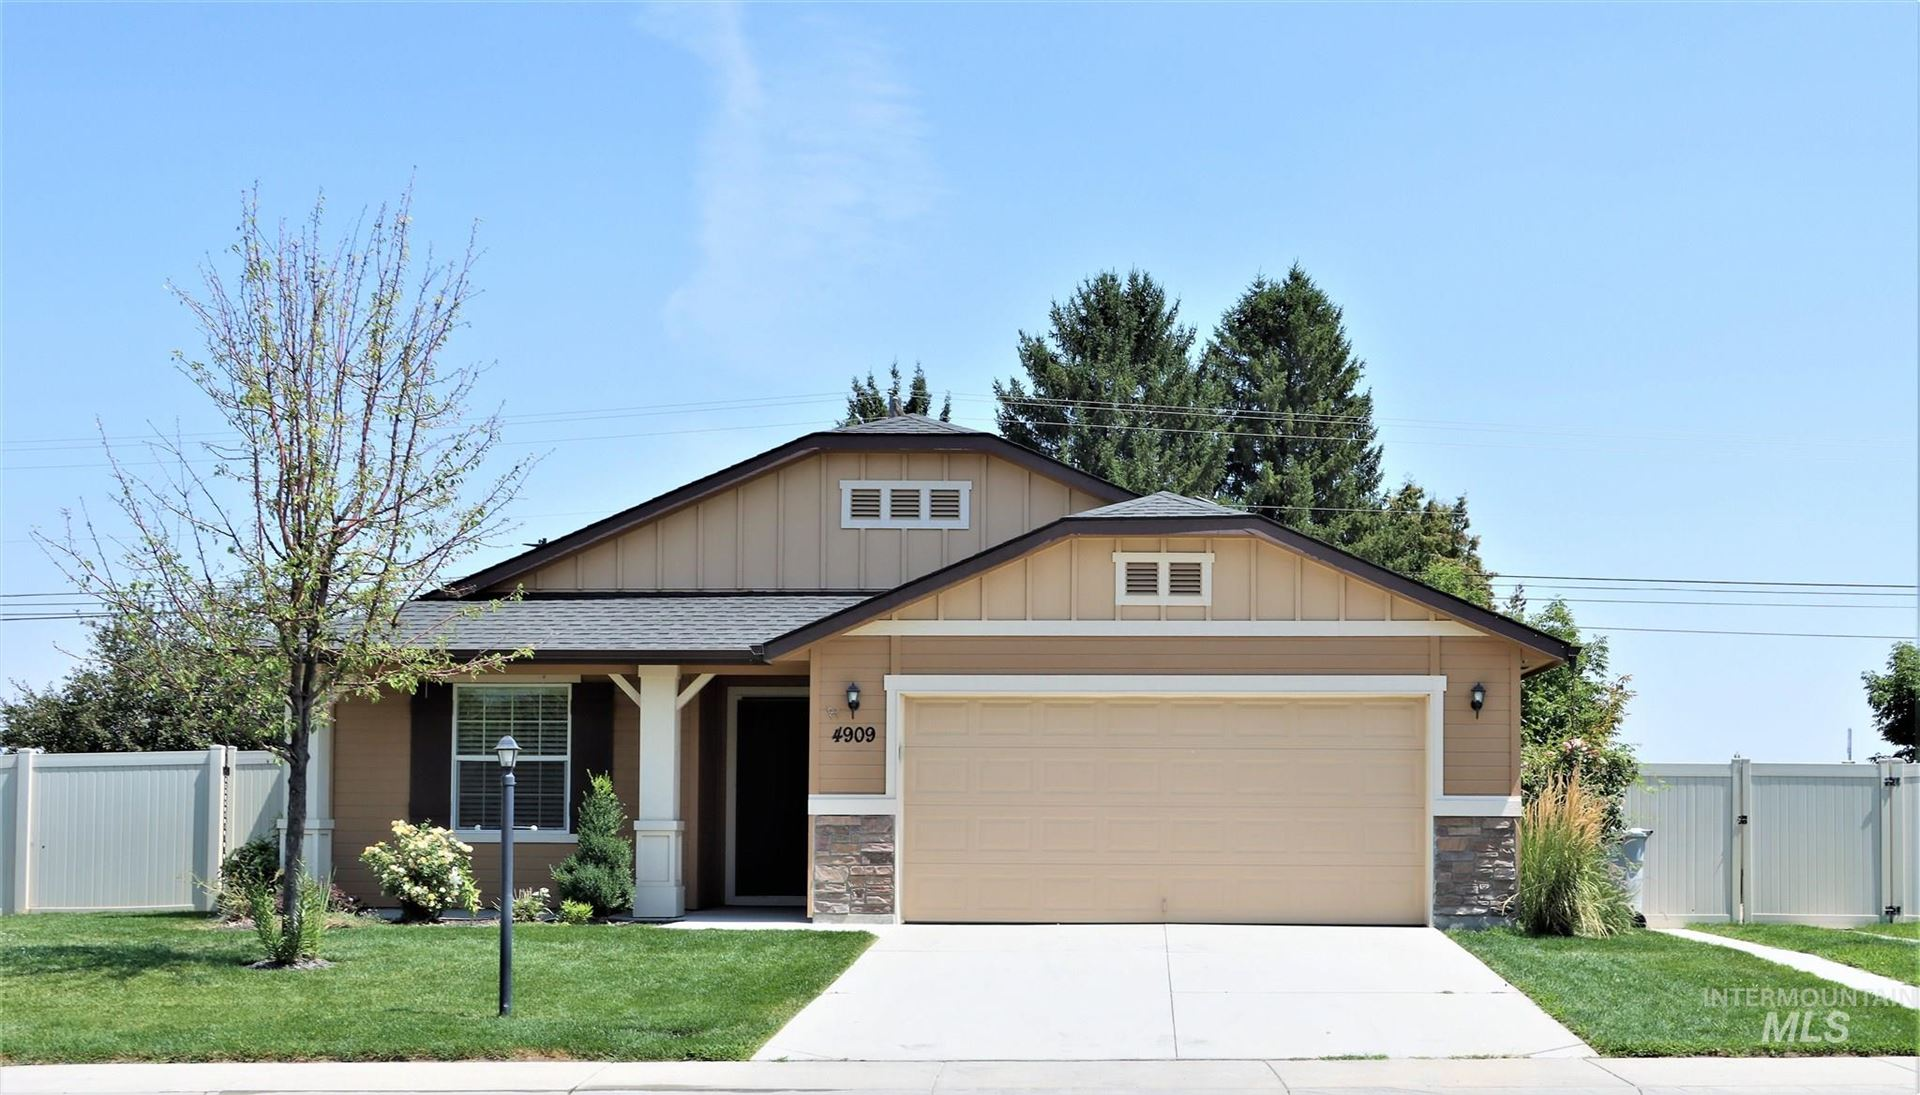 4909 Cider Mill Place, Caldwell, ID 83607 - MLS#: 98812881